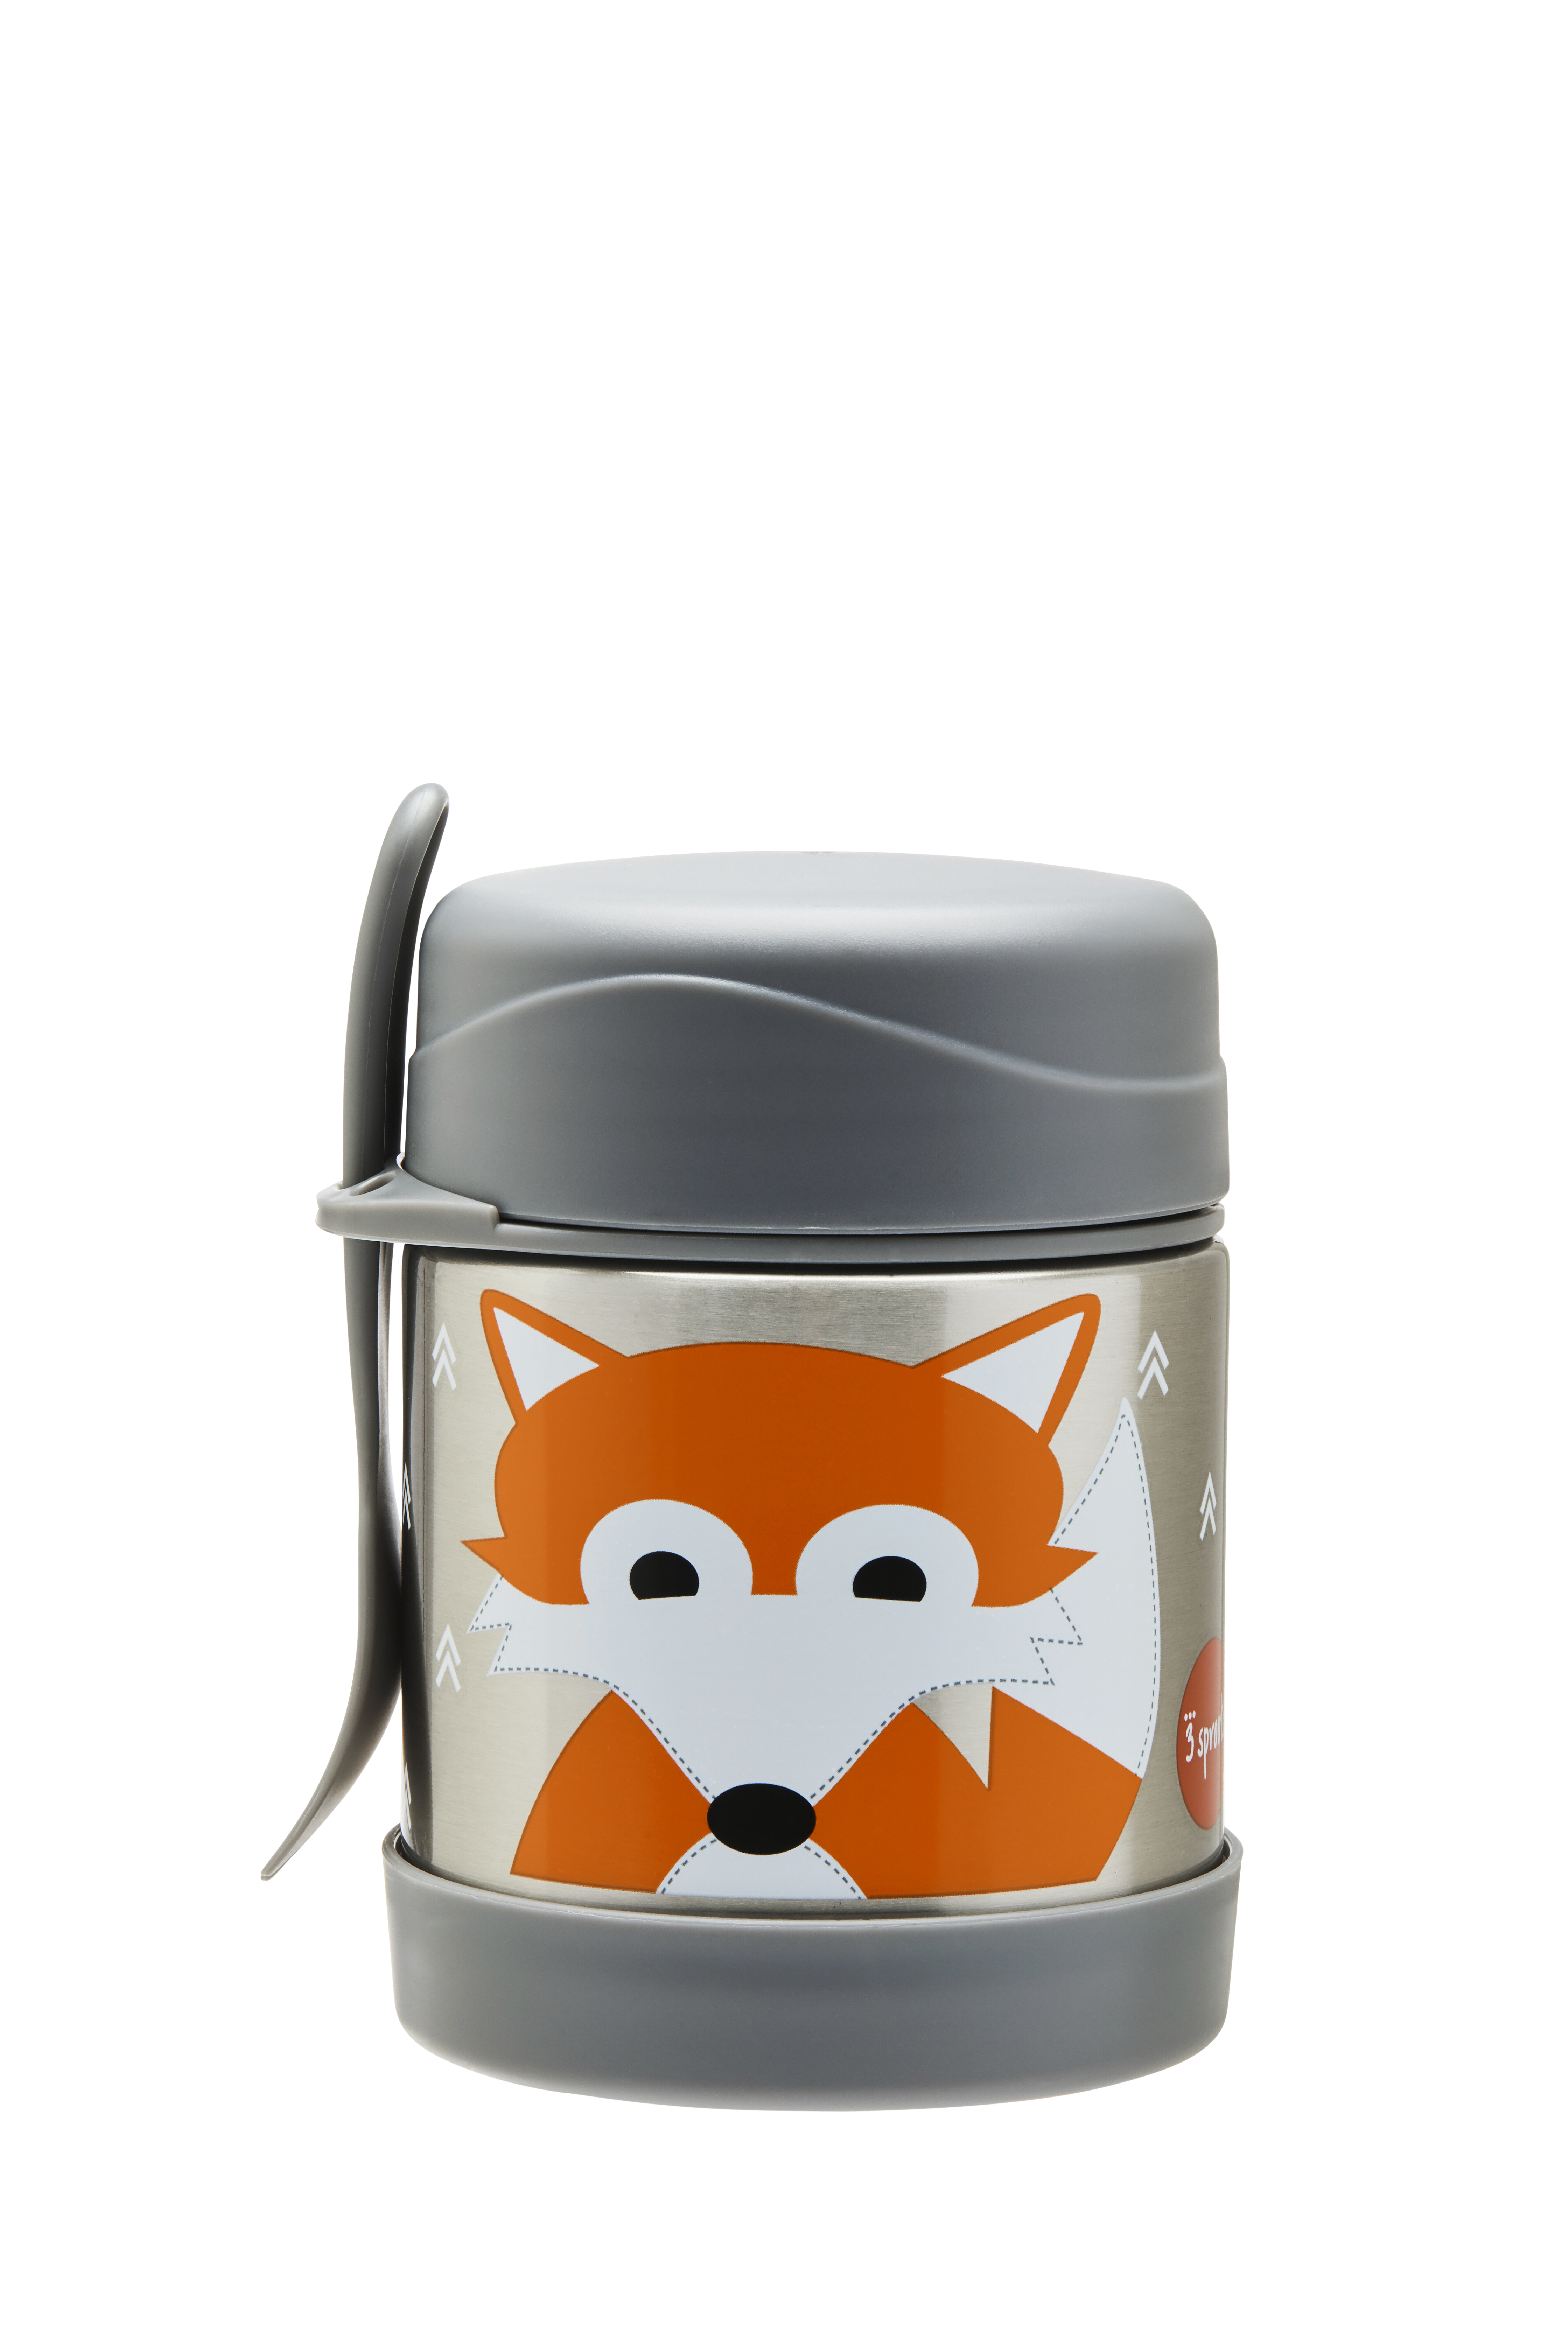 3 Sprouts - Stainless Steel Food Jar and Spork - Gray Fox